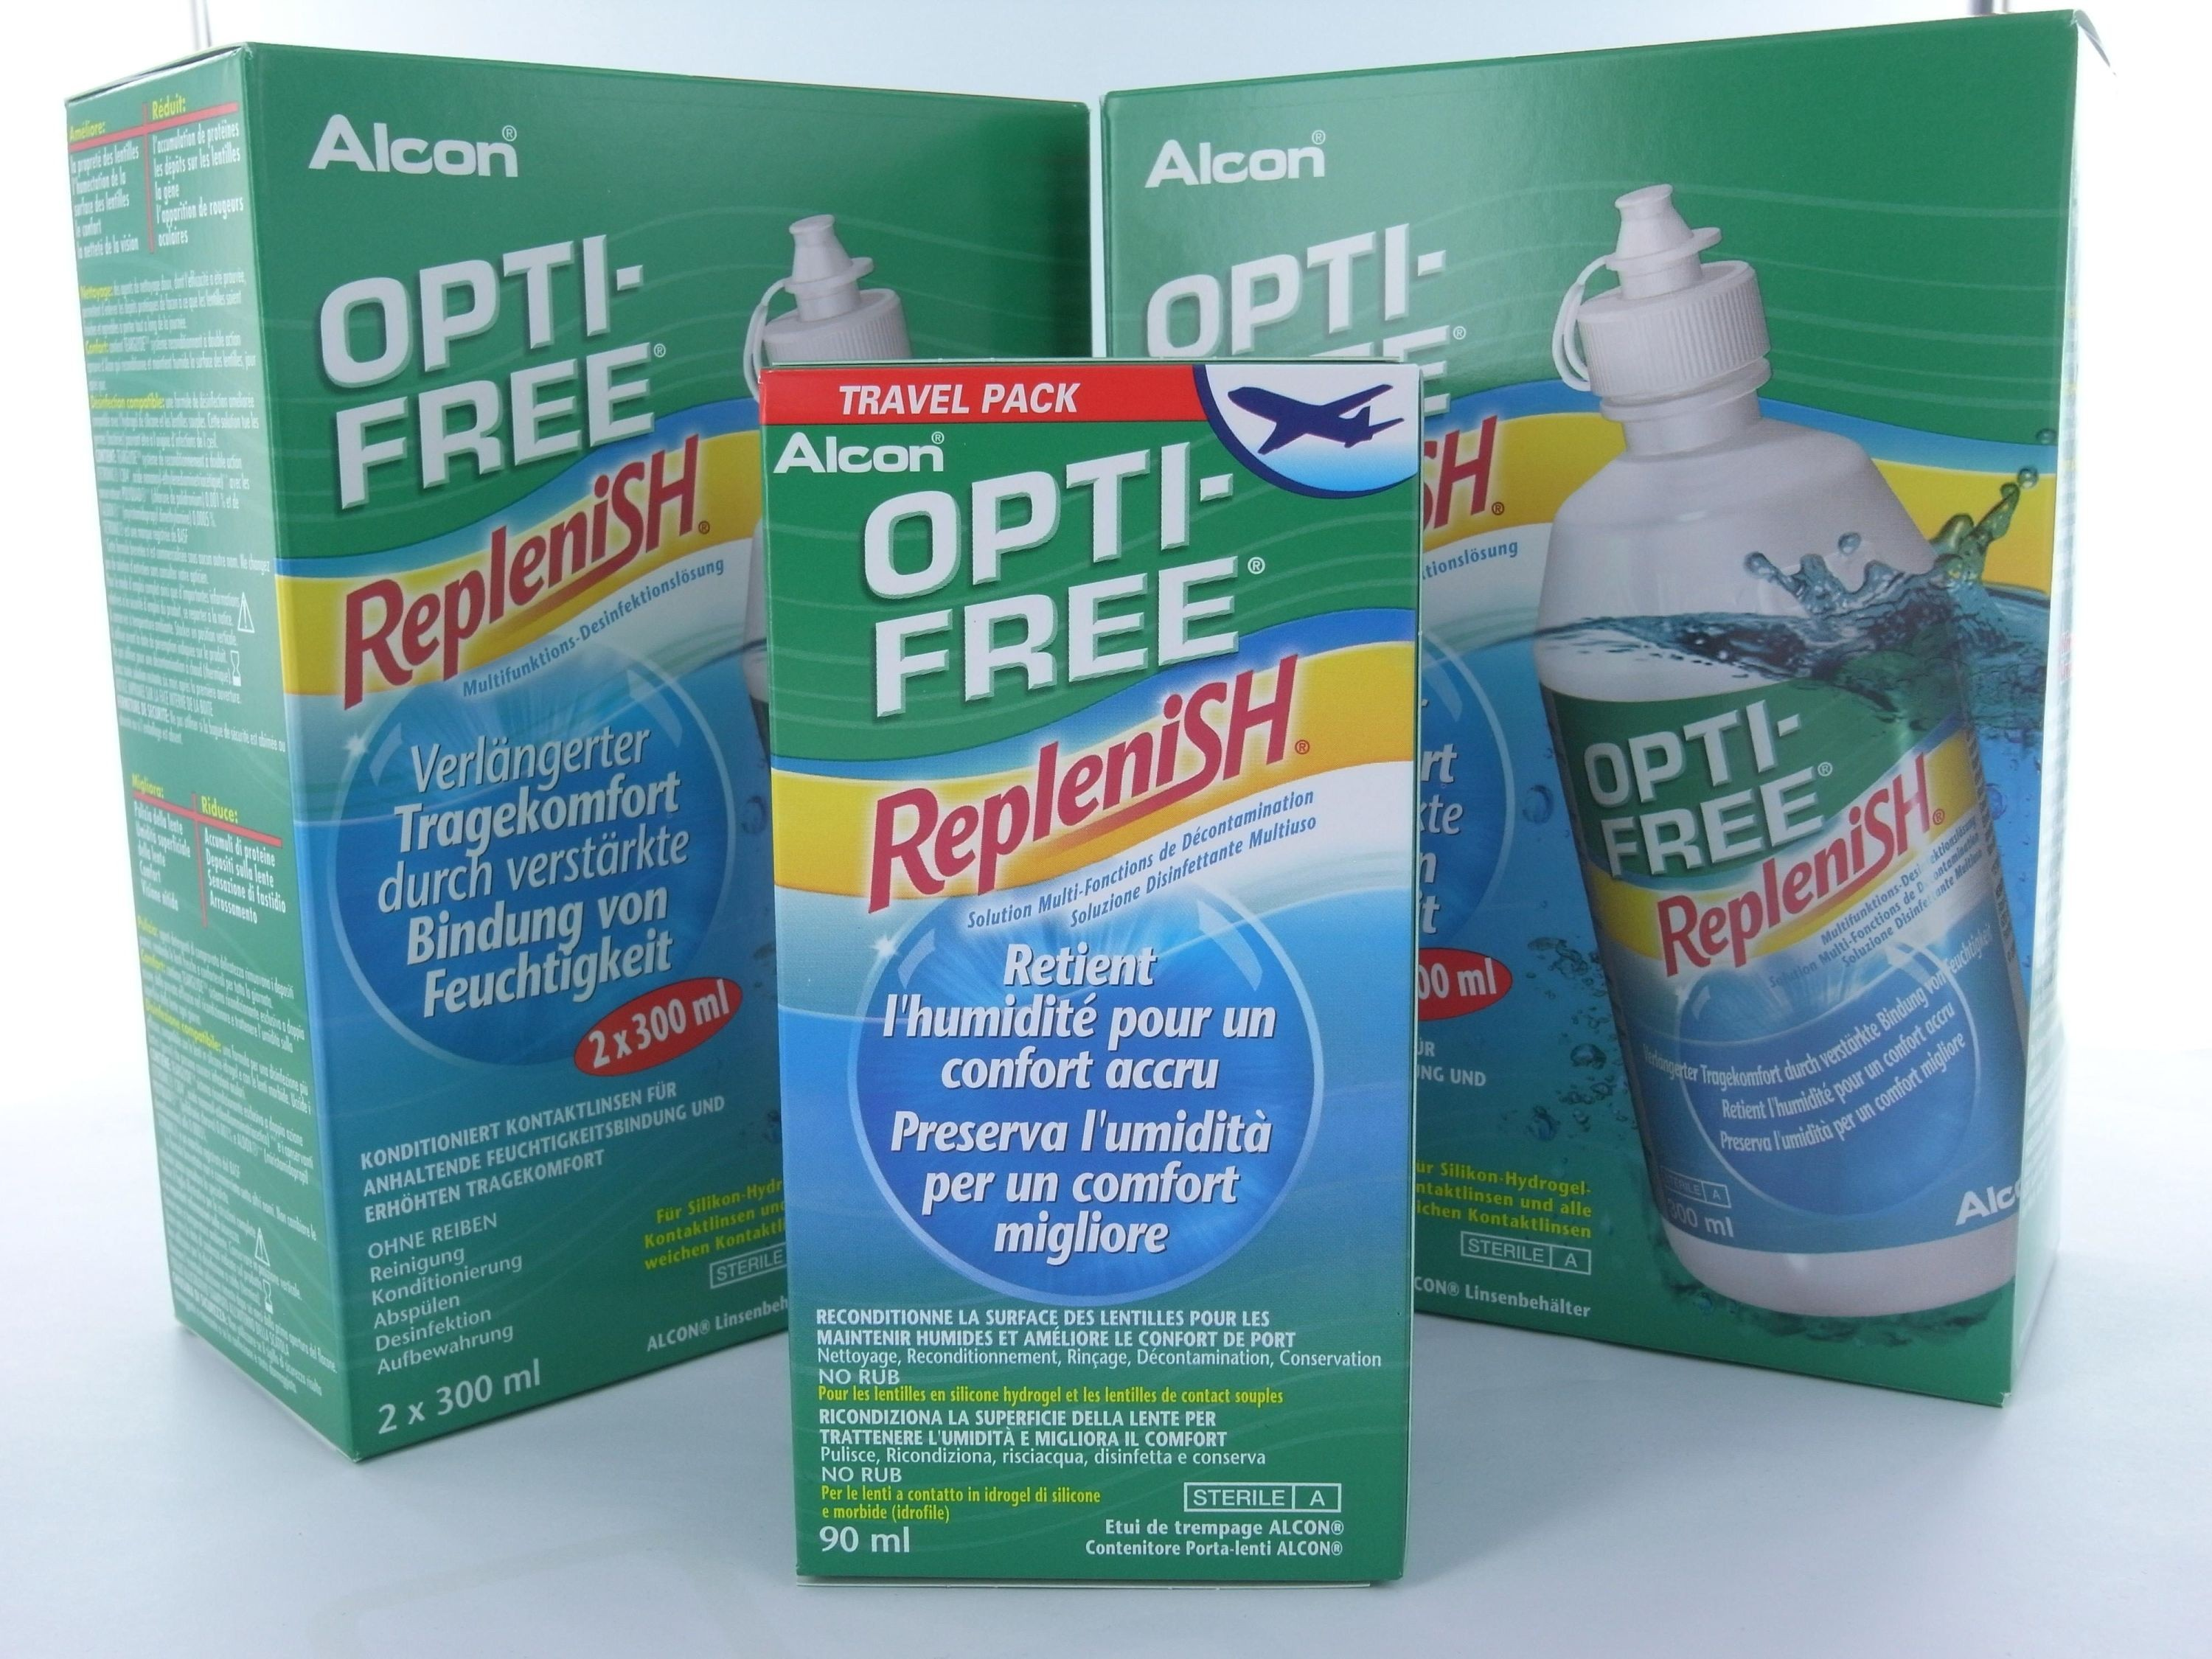 2x  OPTI-FREE RepleniSH  2x 300ml + 1x  OPTI-FREE RepleniSH  90ml